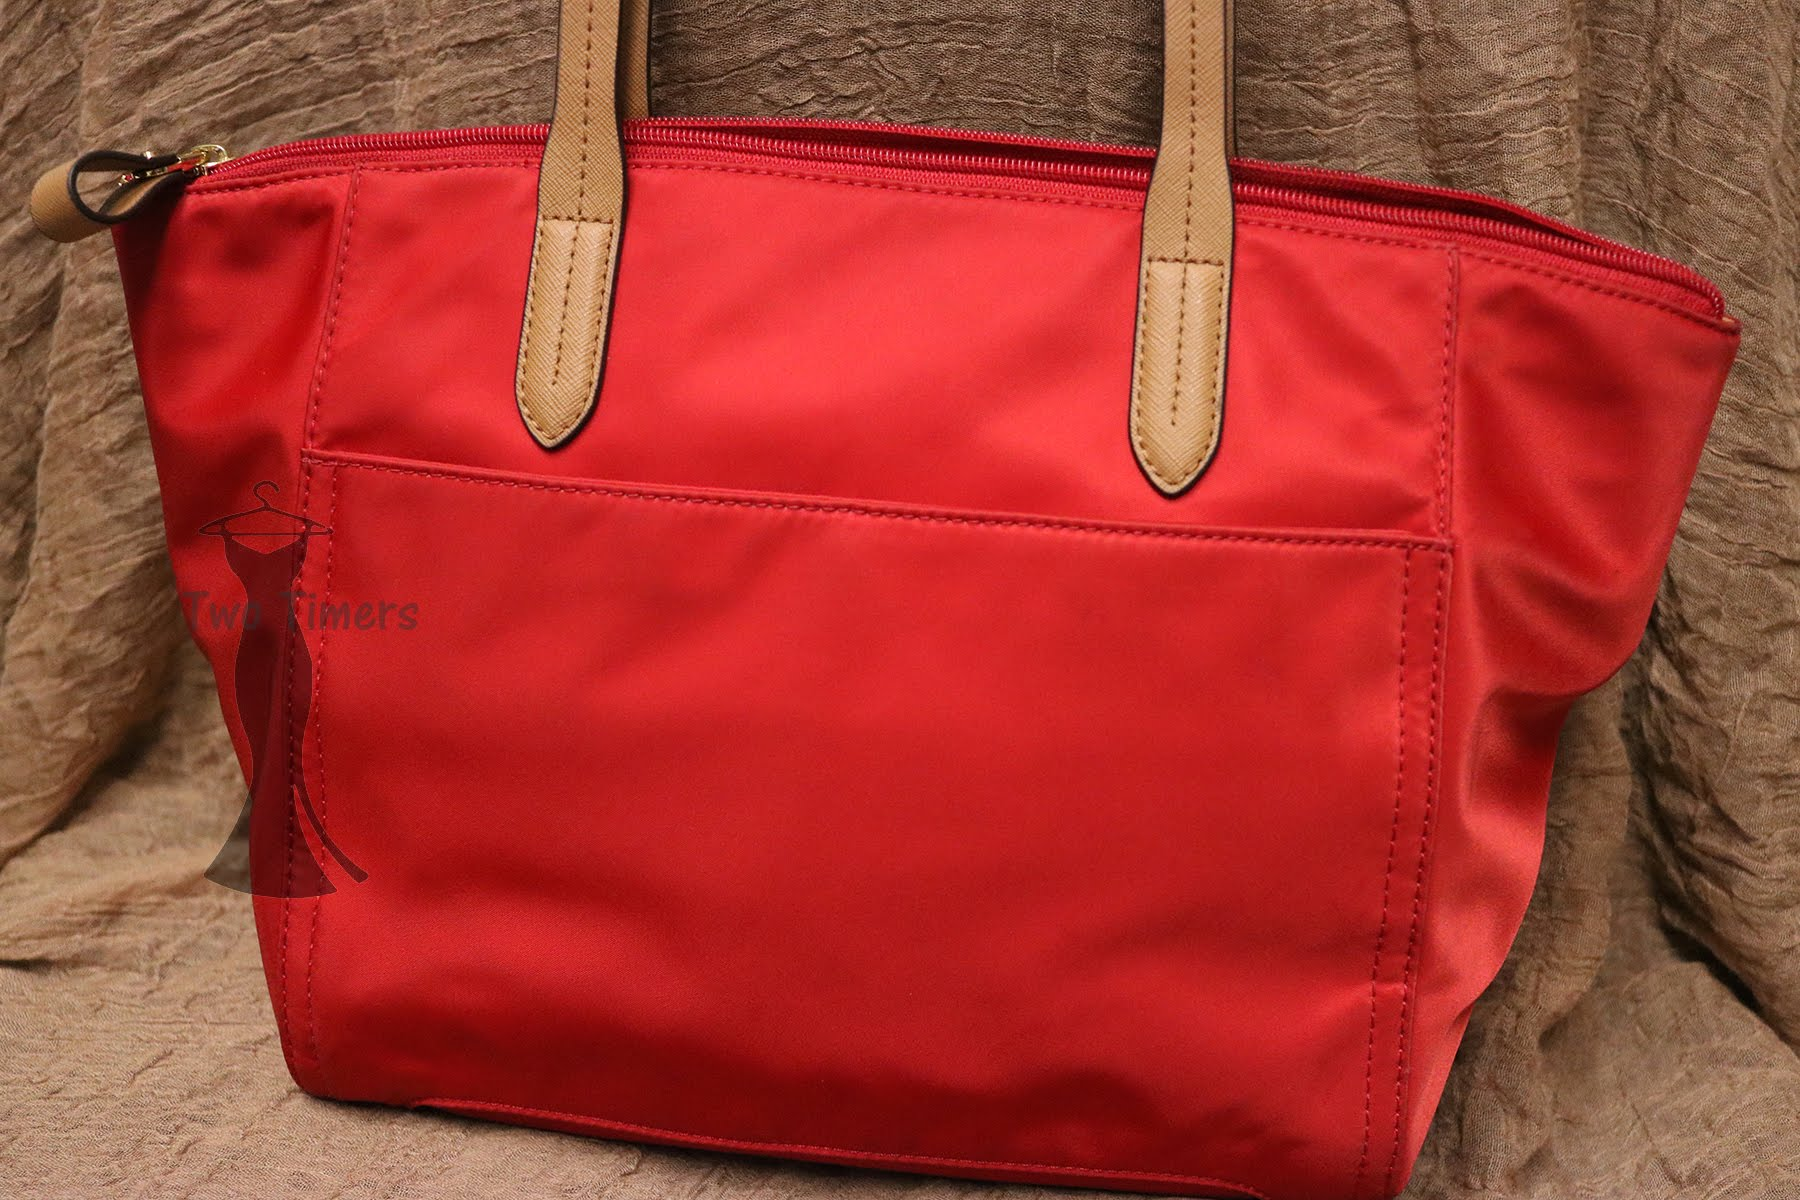 633a80975524 spain nwt michael kors large hamilton tote bag leather 5d5c0 25f58  reduced  red michael kors purse nwt cd775 0c262